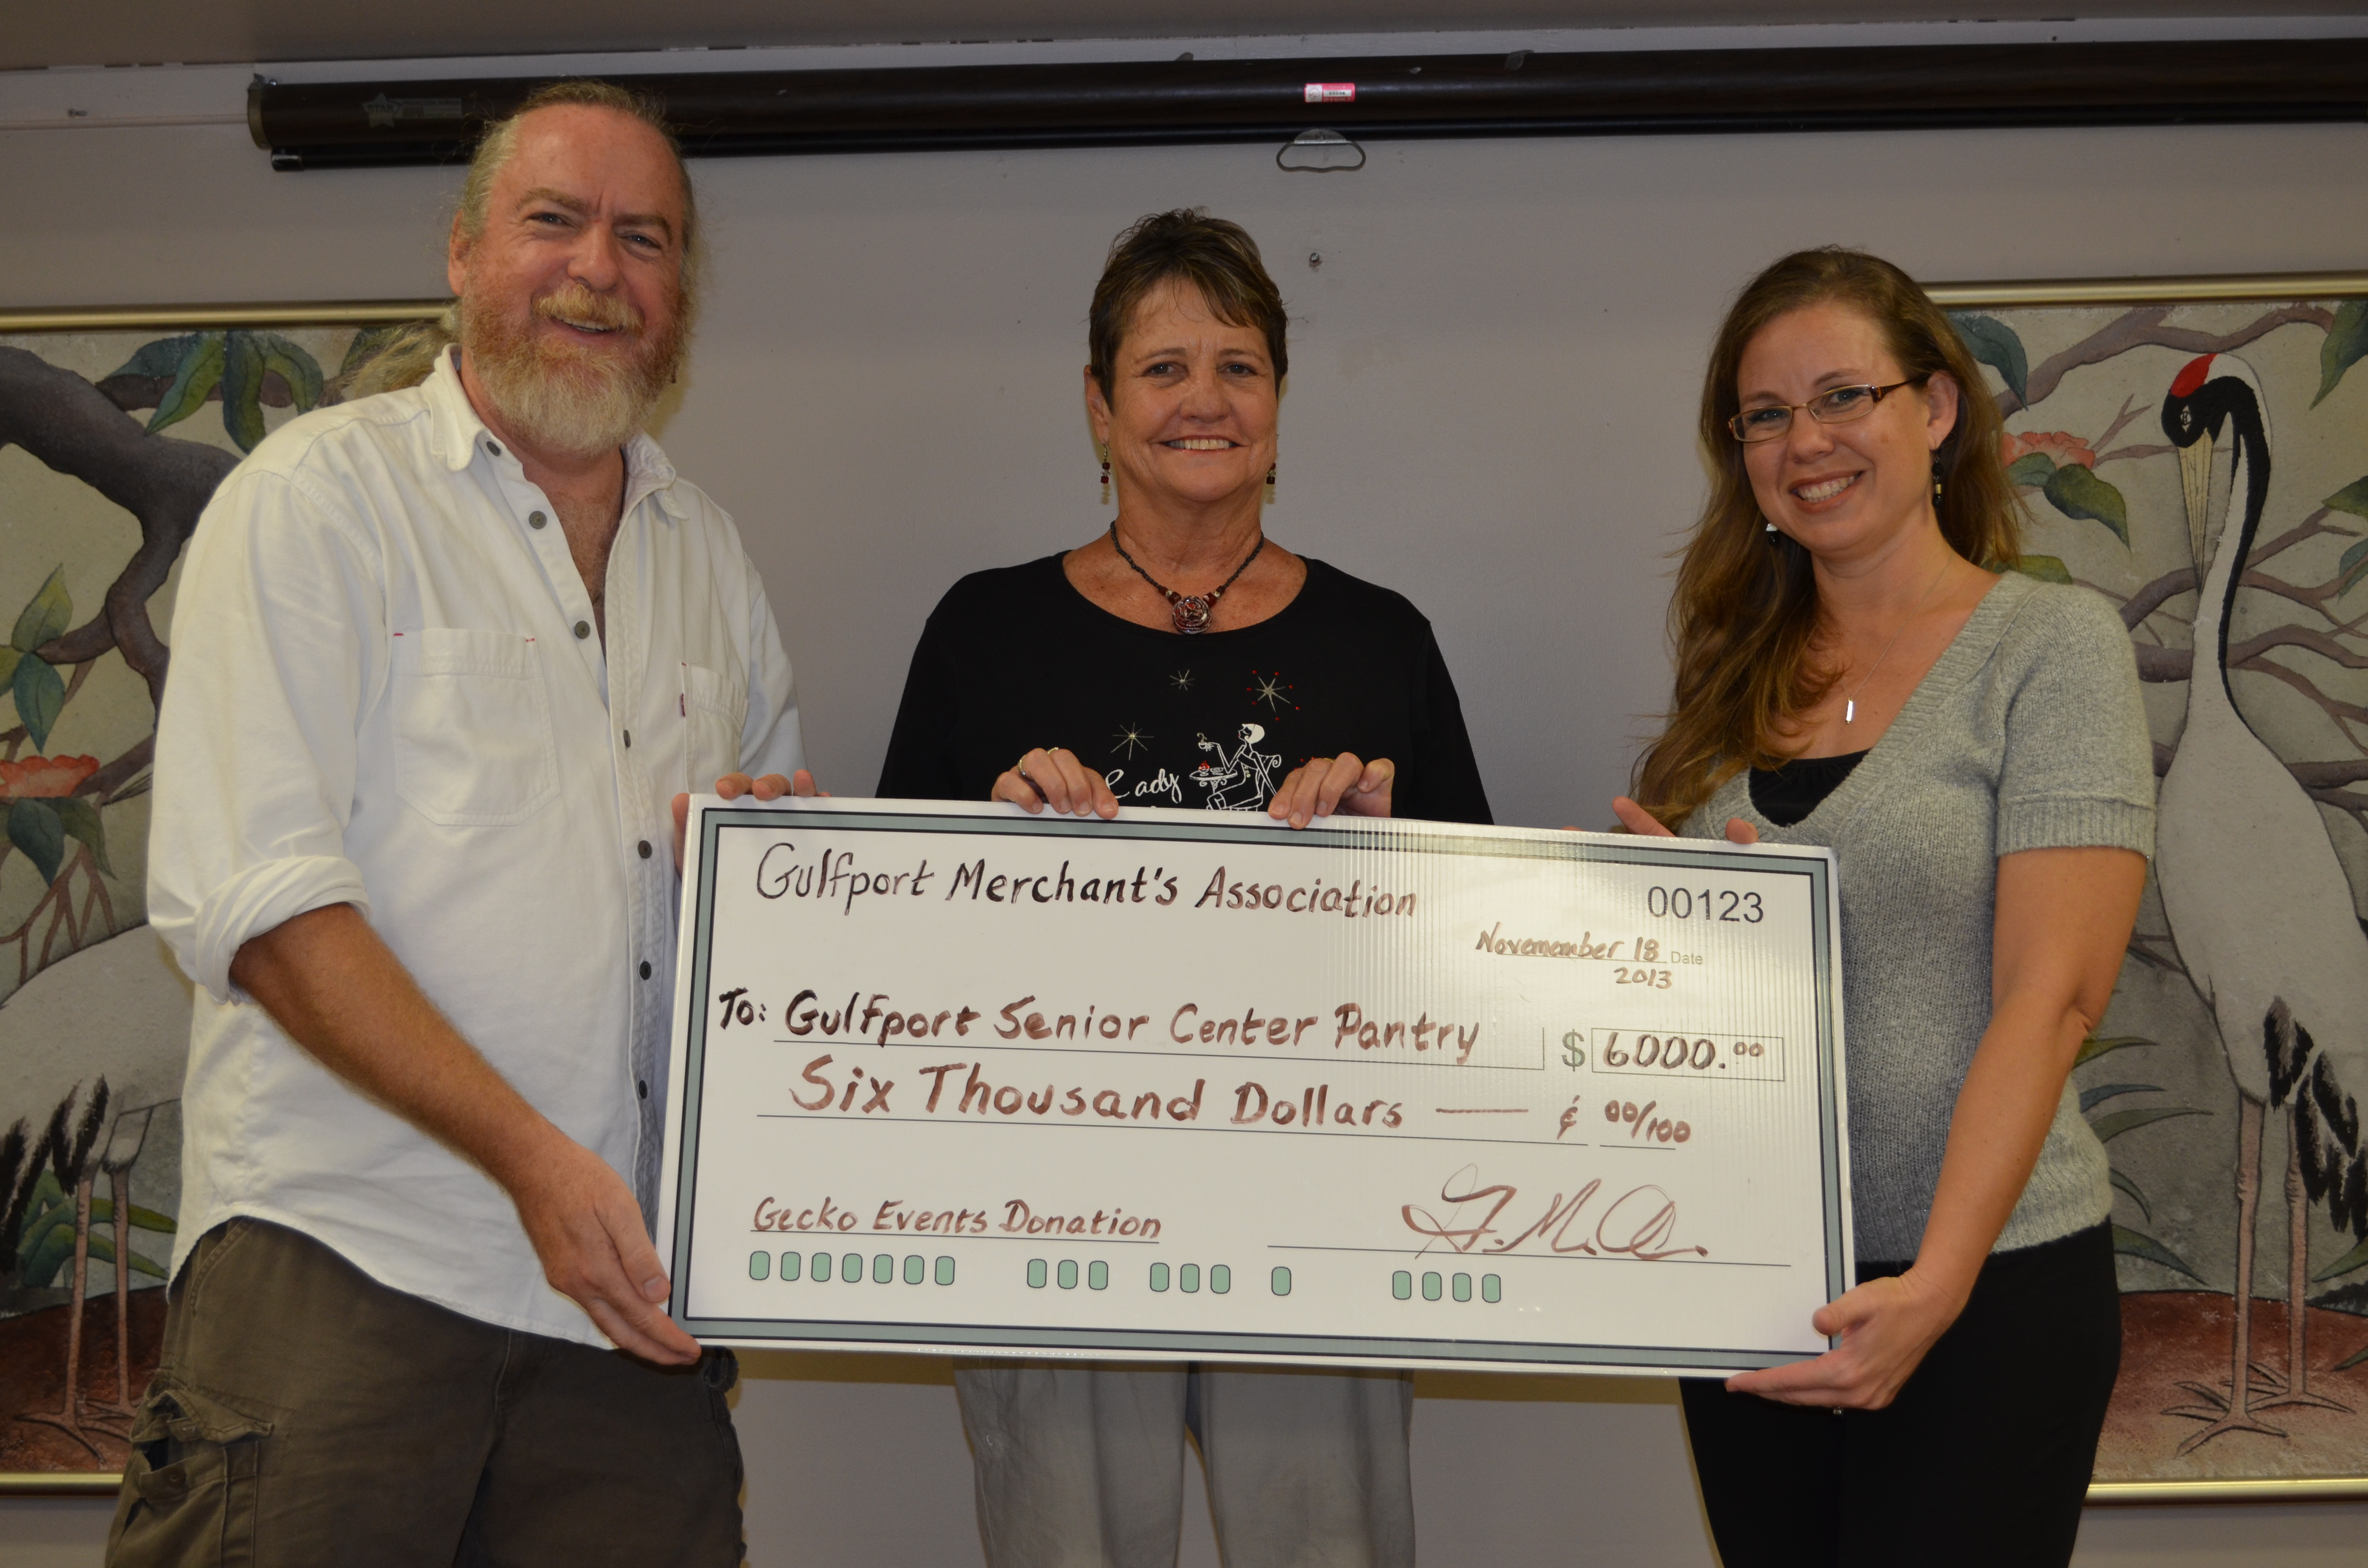 Gulfport Merchants Association Board (GMA) members Daniel Hodge (left) and Marsha Warner (center) present a donation to Rachel Cataldo, Gulfport Senior Center Coordinator, representing $6,000 worth of food and supplies to be donated to the Senior Center Pantry.